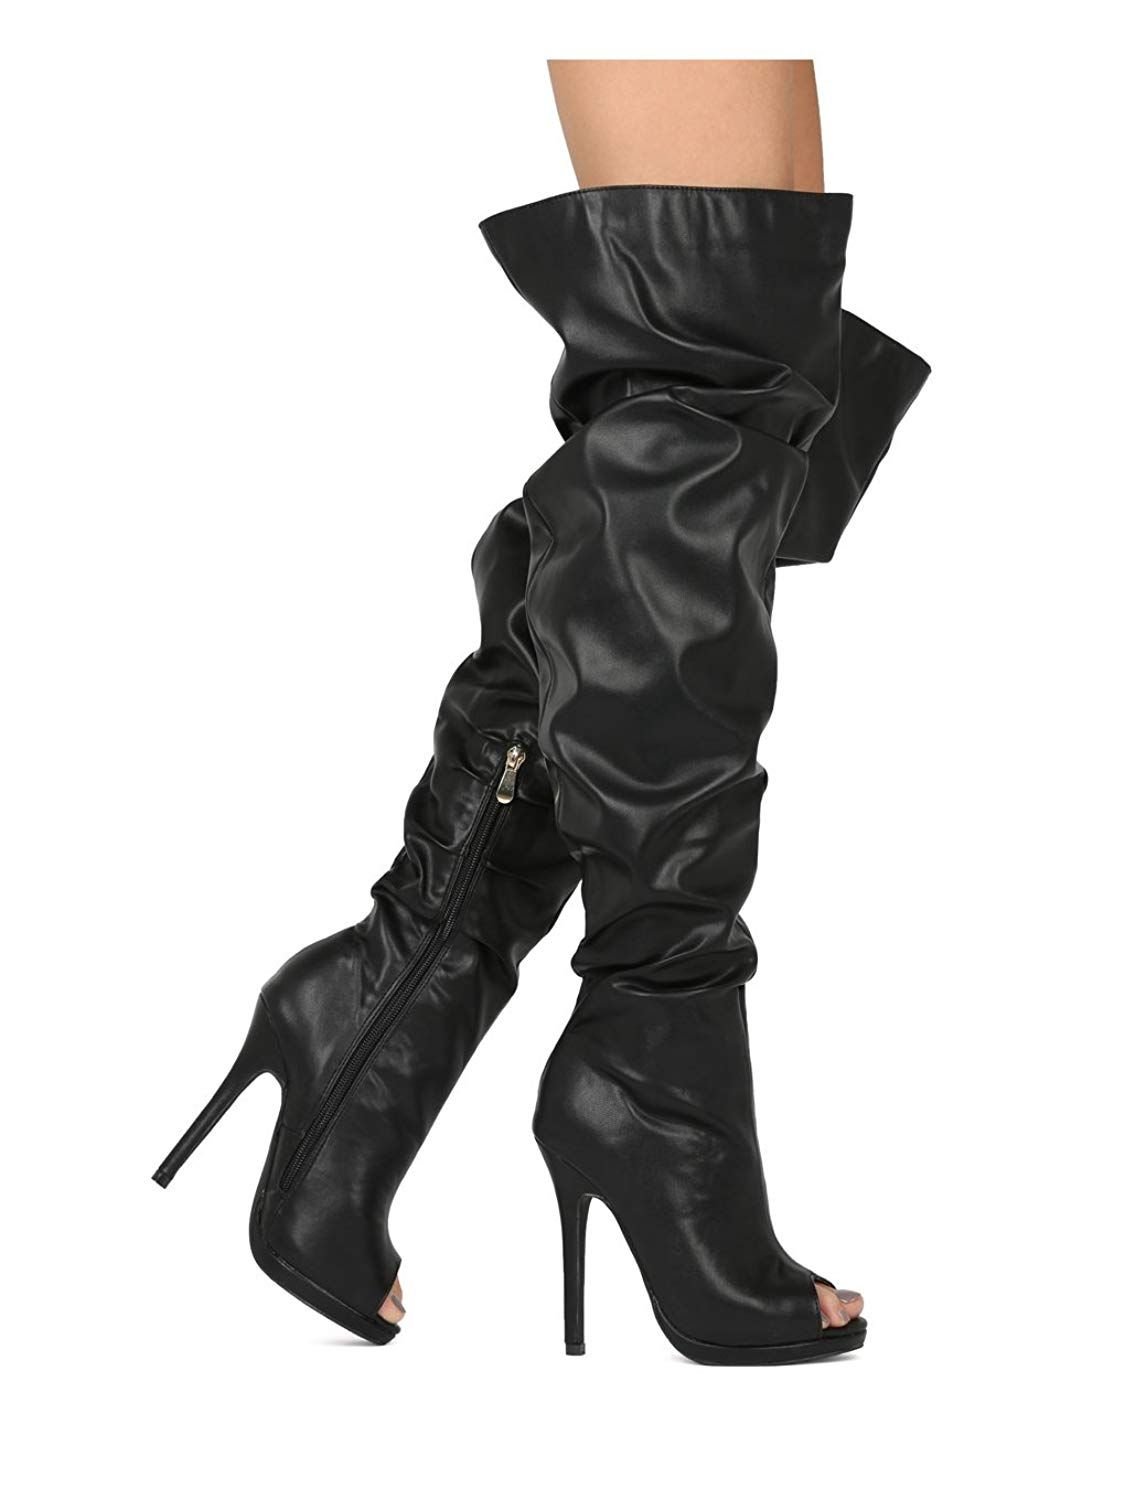 Women Over The Knee Peep Slouchy Stiletto Boot - Thigh High Cosplay Costume  Dressy Party - HE82 by Liliana Collection.Women's … | Boots, Stiletto boot,  Trendy shoes